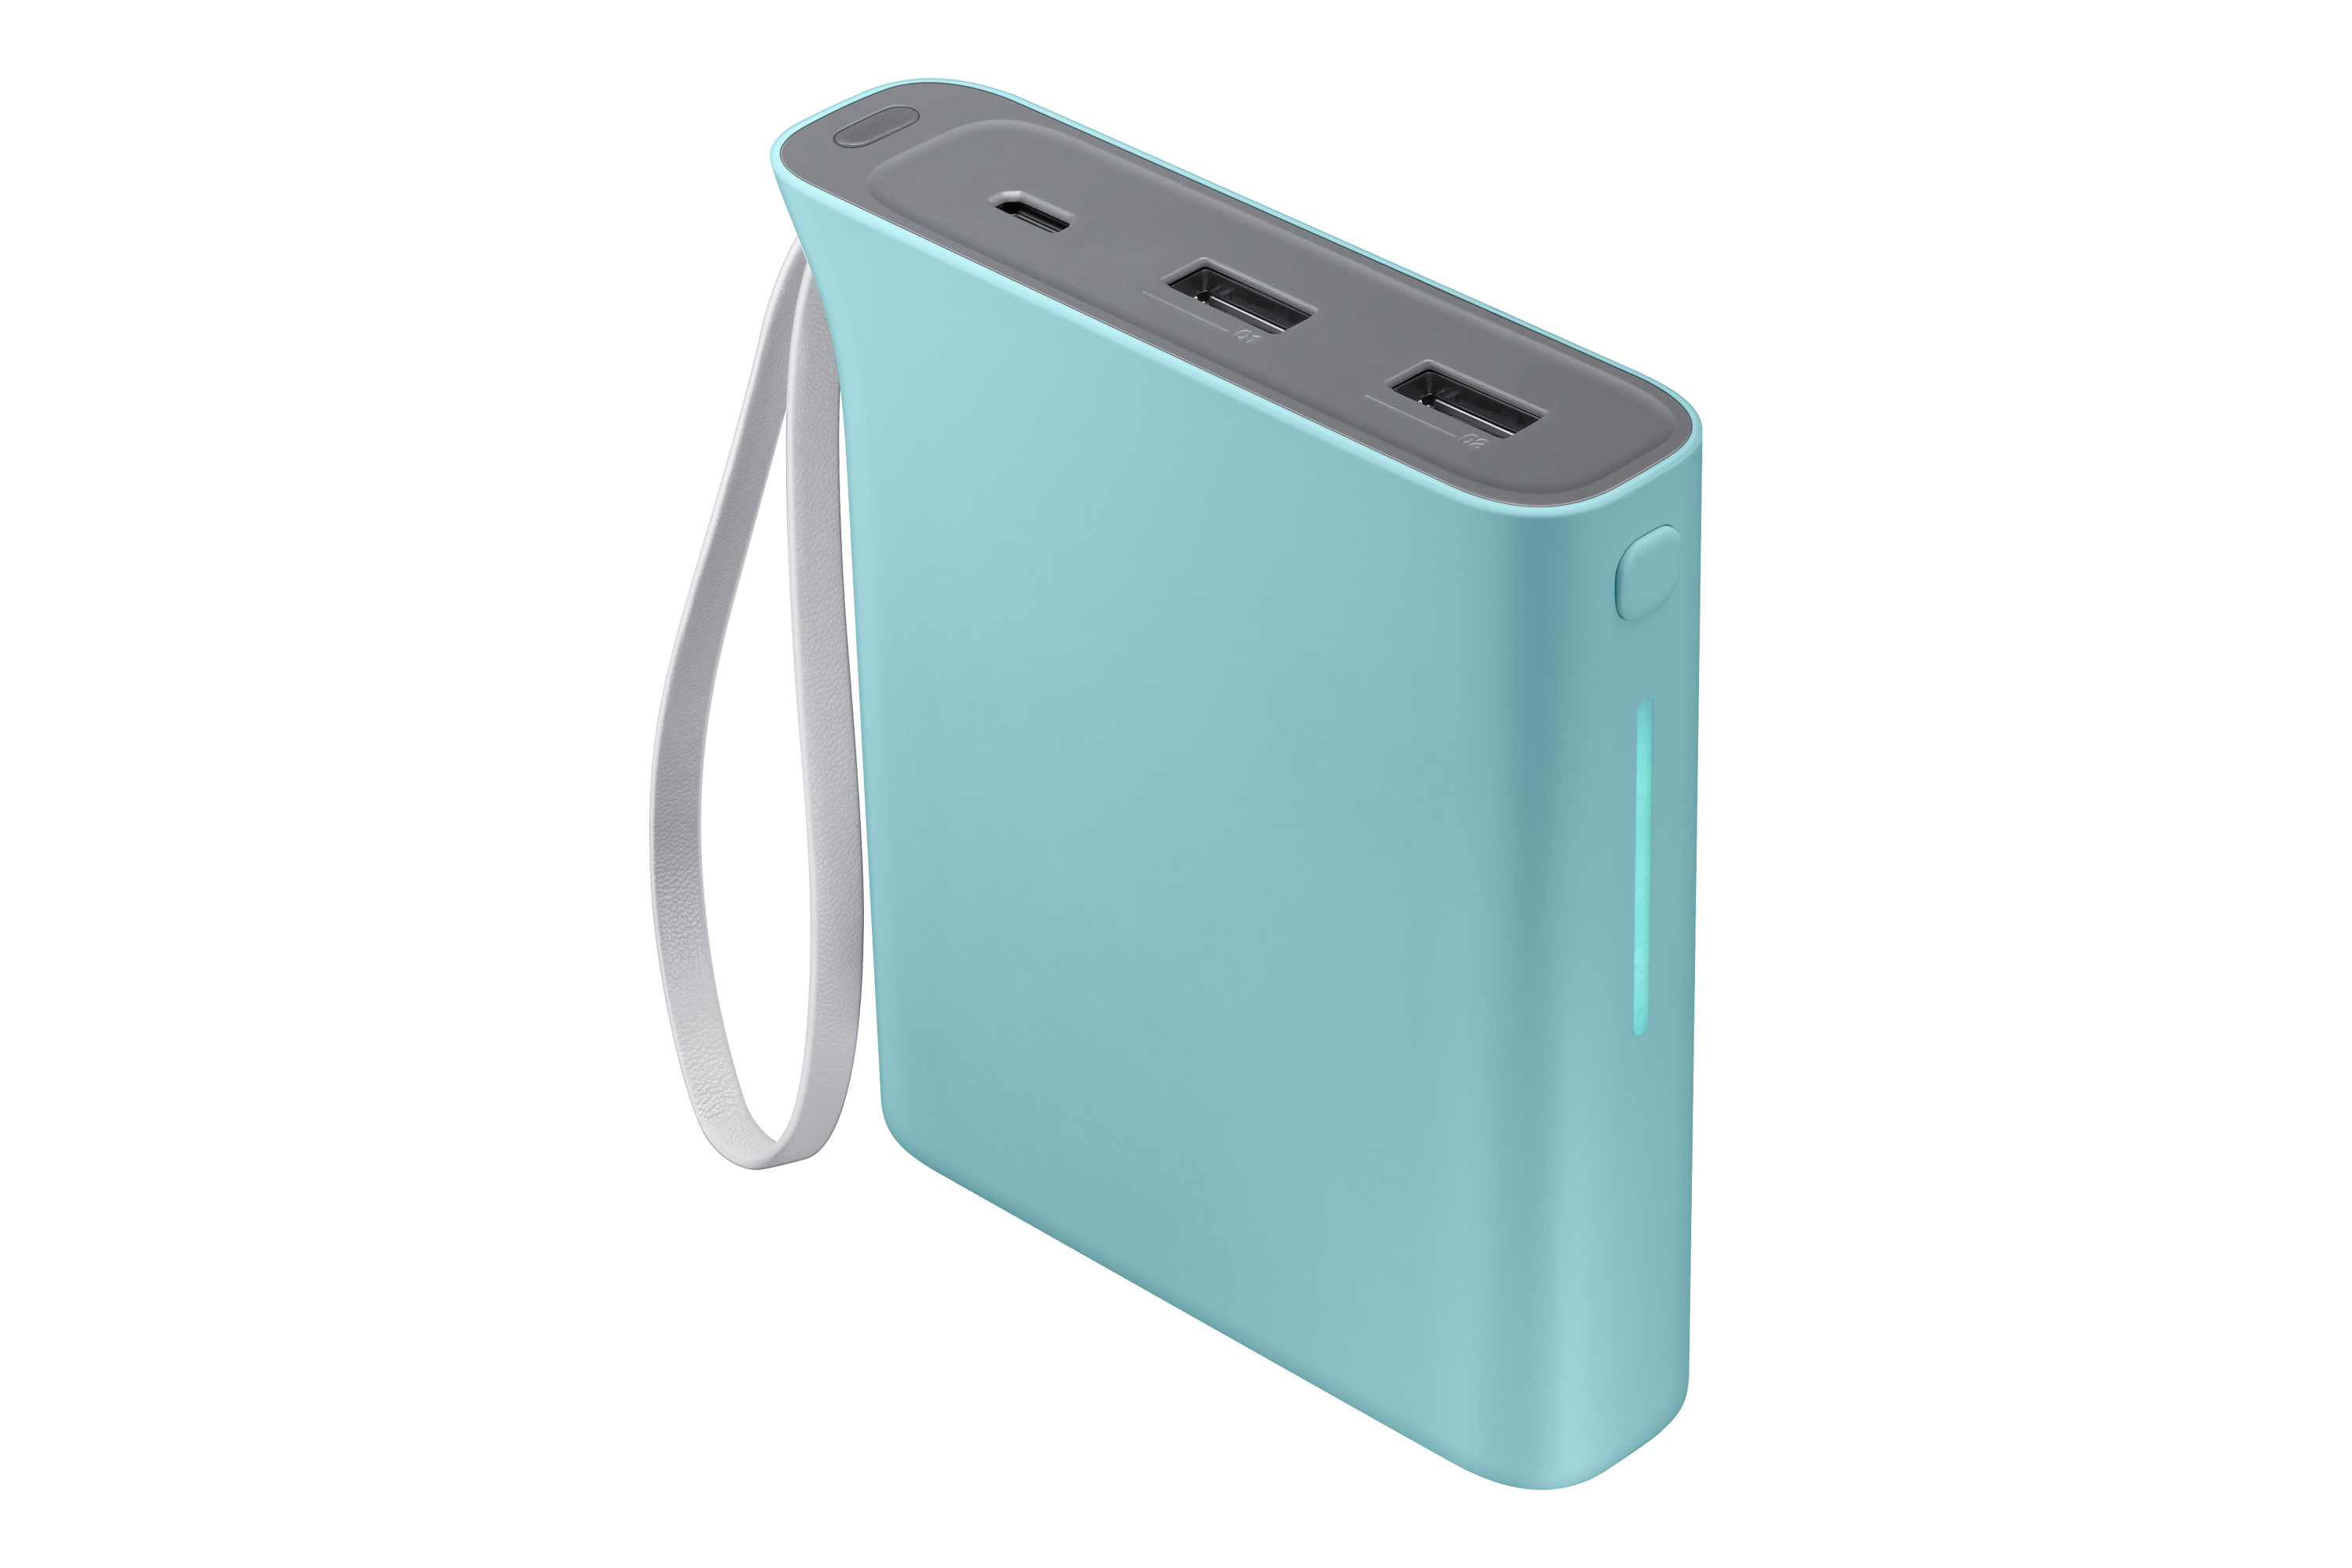 Evo Range Rechargeable Battery Pack (10,200mAh)